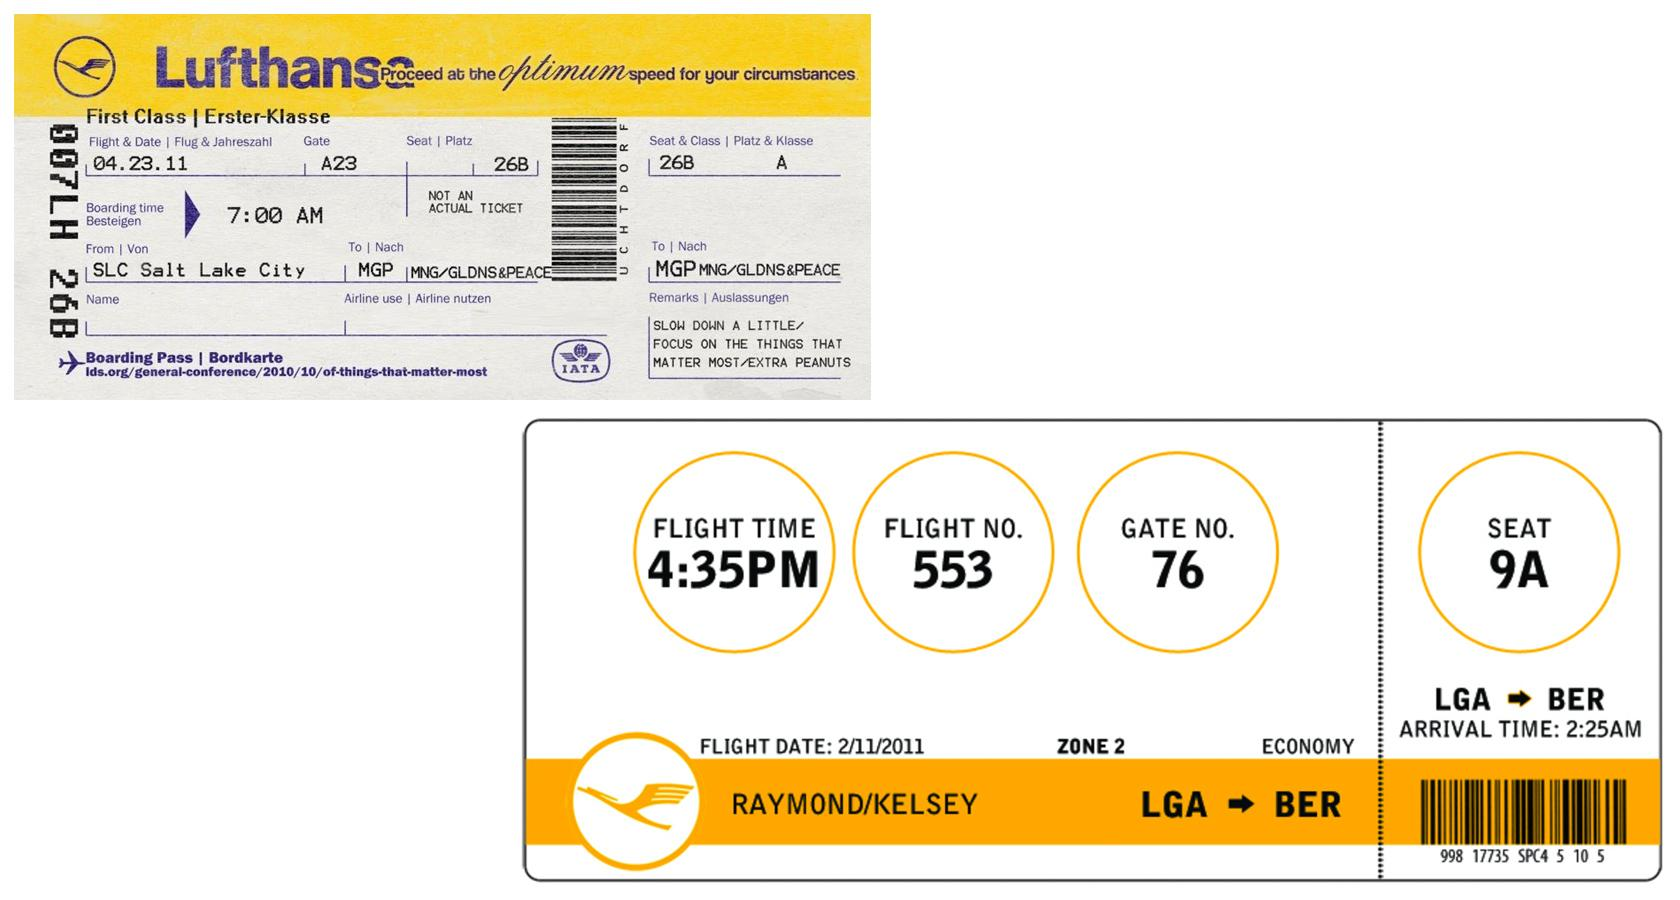 Lufthansa boarding pass redesign